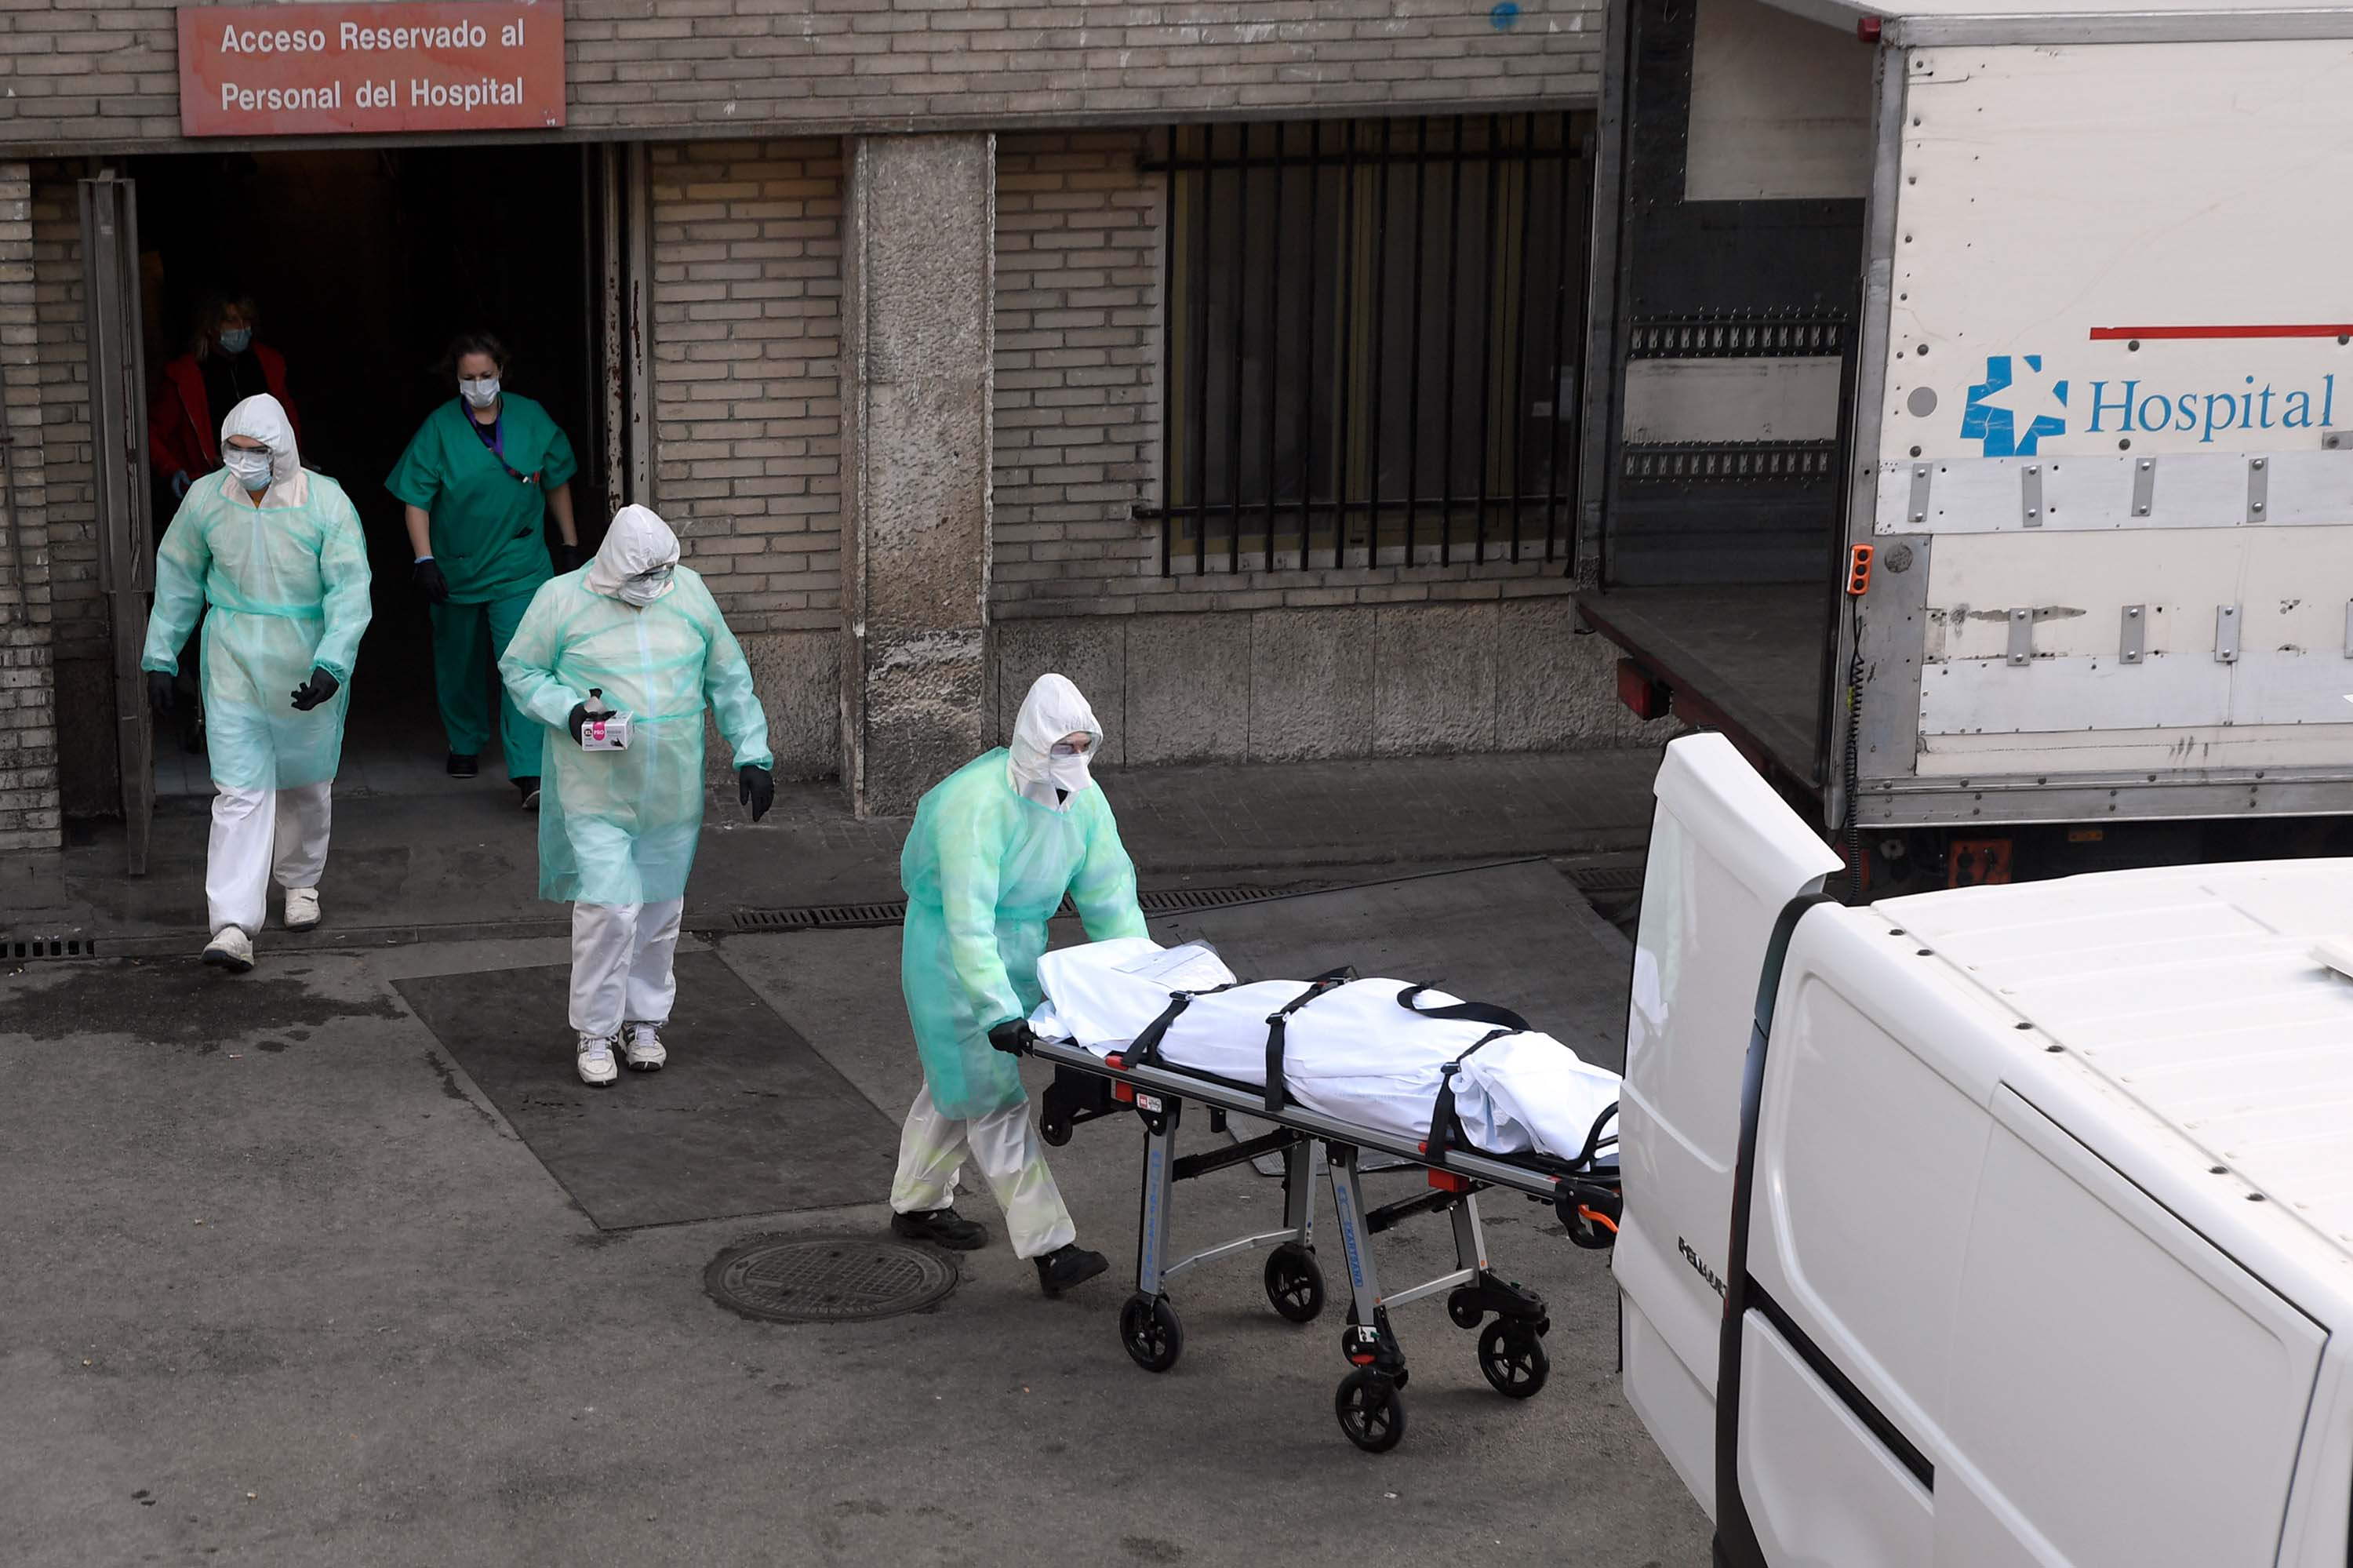 Health workers transport a body on a stretcher outside the Gregorio Maranon hospital in Madrid on March 25.